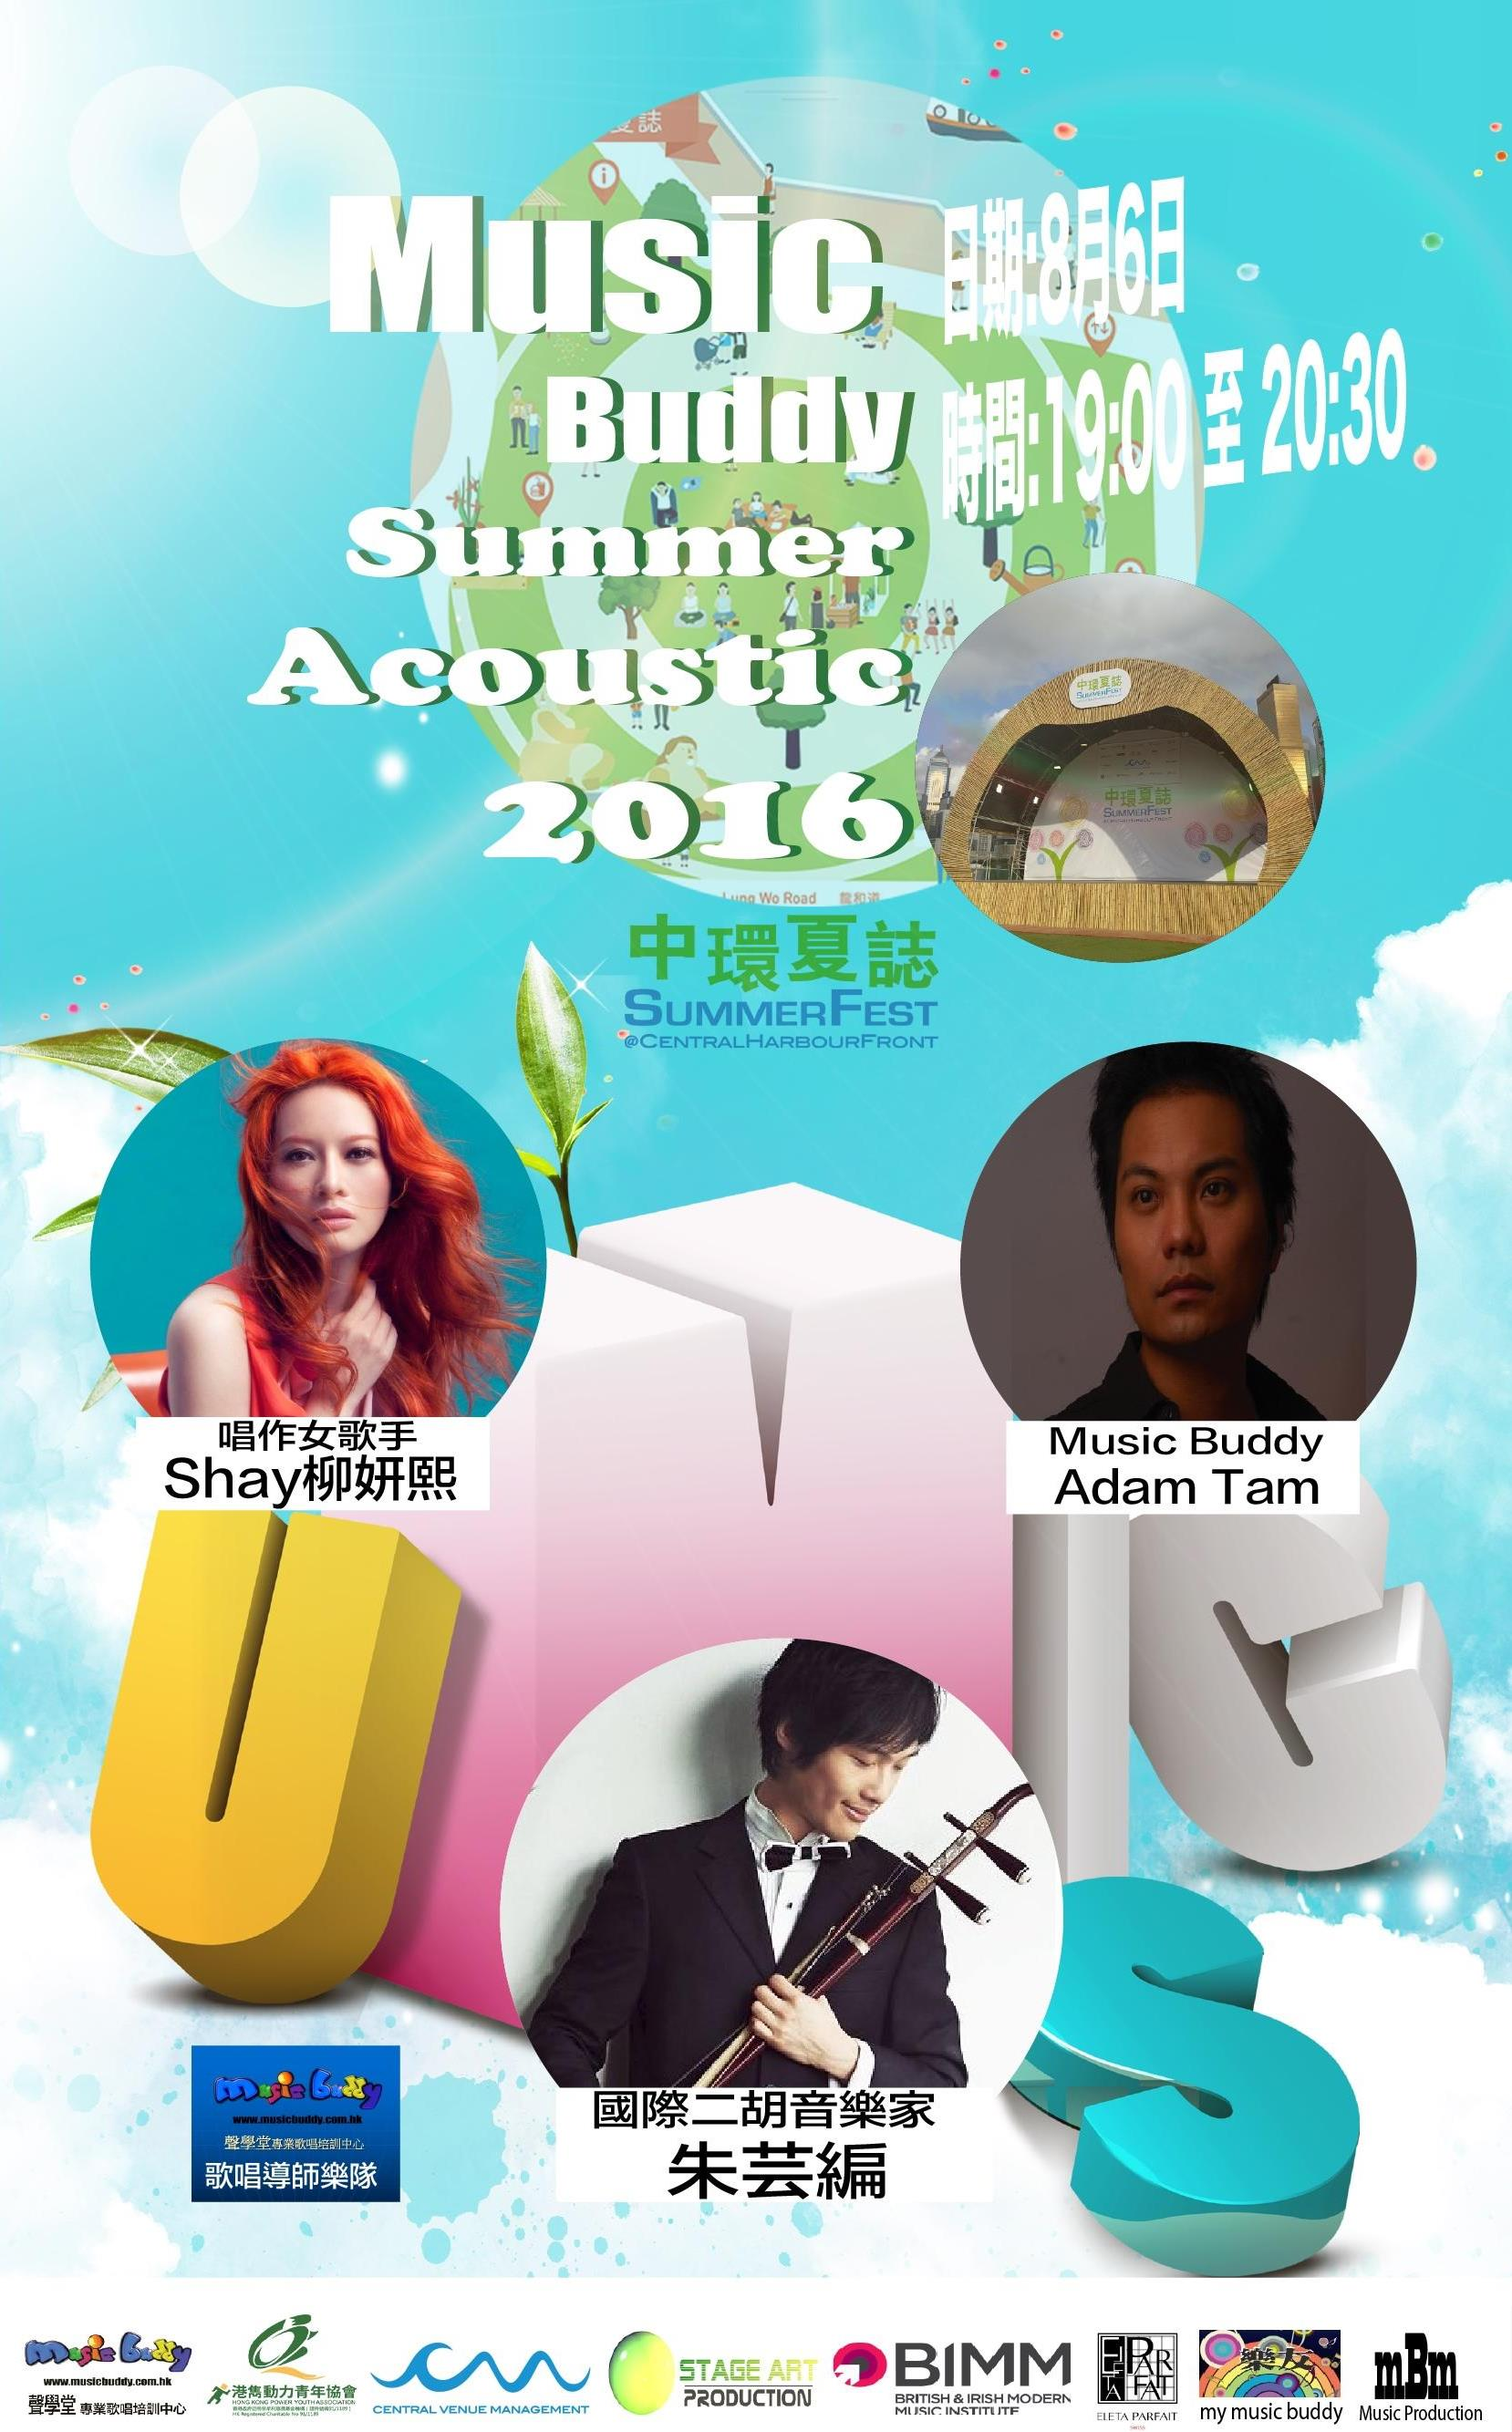 Music Buddy Summer Acoustic